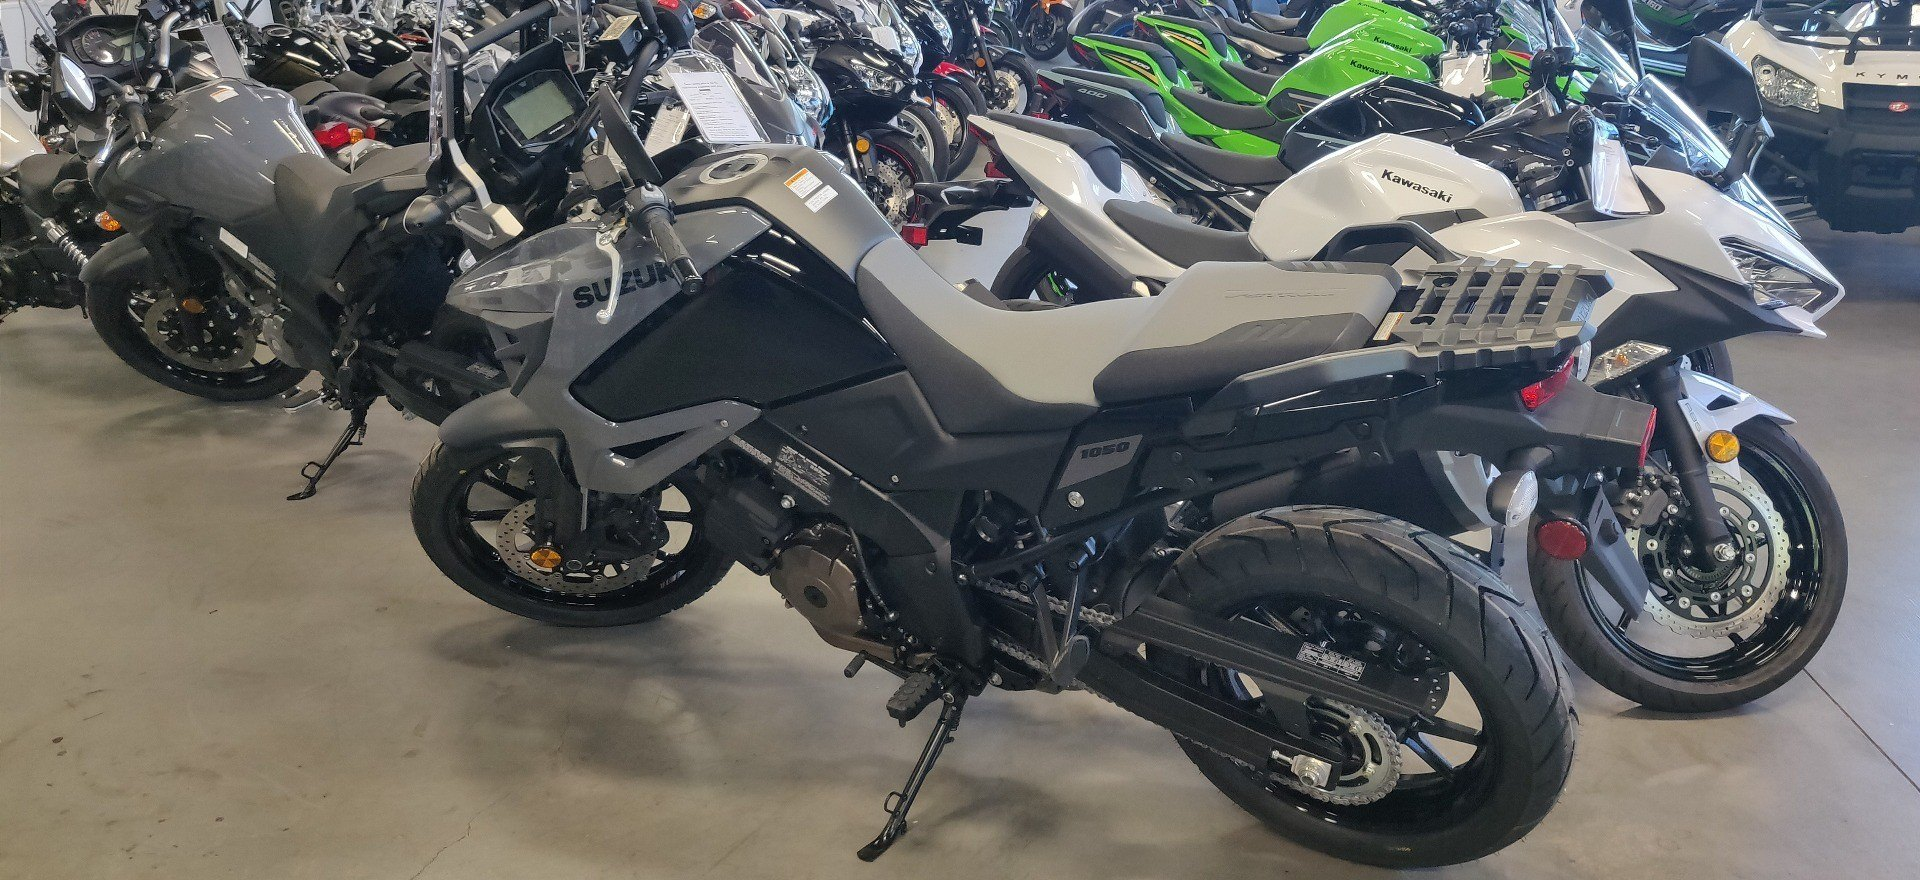 2020 Suzuki V-Strom 1050 in Vallejo, California - Photo 1